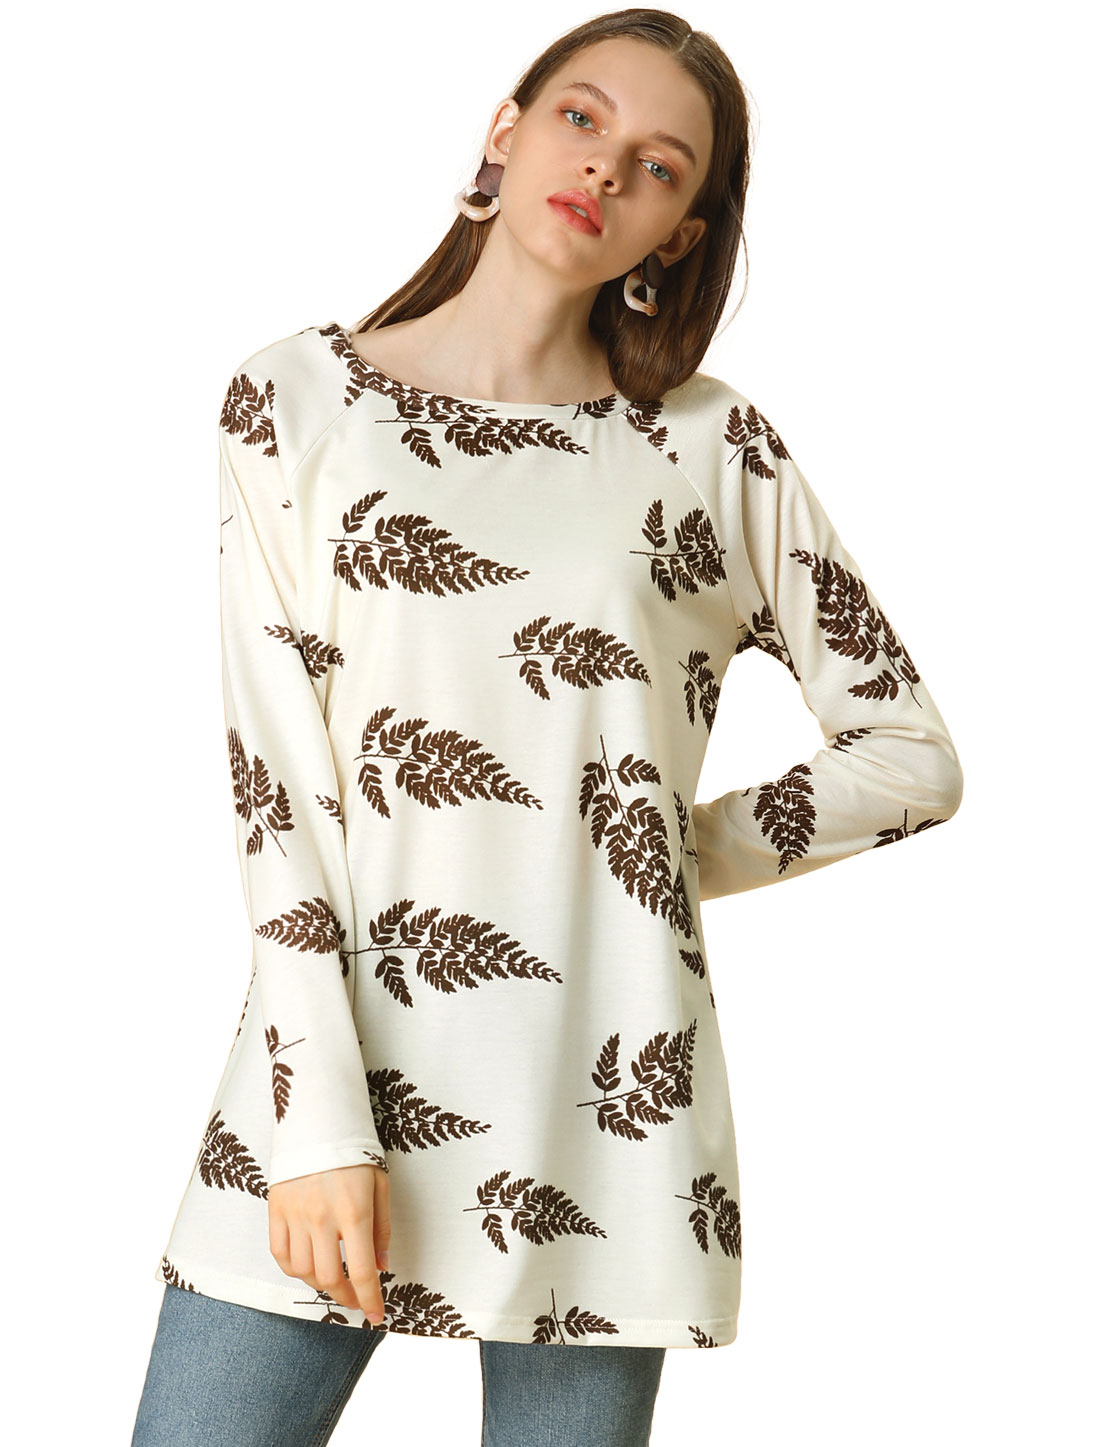 Allegra K Women's Leaf Print Raglan Loose Tunic Top Crem White L (US 14)